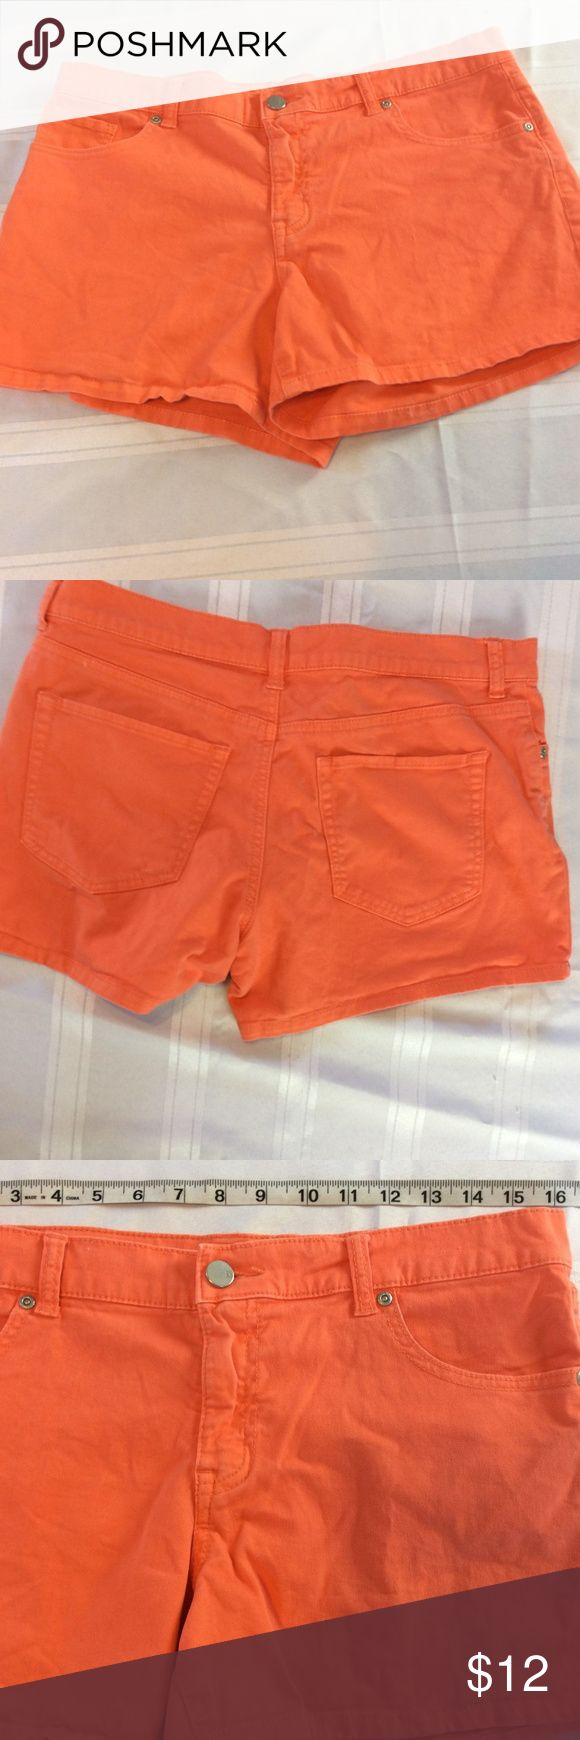 New York and Company Womens Orange Shorts Size 8 100% money back guarantee, free returns and excellent customer service.  Your item will ship within 24 hours after payment is received (excluding weekends and Holidays)  Please let us know if you have any questions.   New York and Company Womens Orange Denim Shorts Size 8 Summer  Location: M2  Our items are all from a pet free, smoke free home.  Items are purchased locally or donated so we are not aware if they have formally been around smoke…